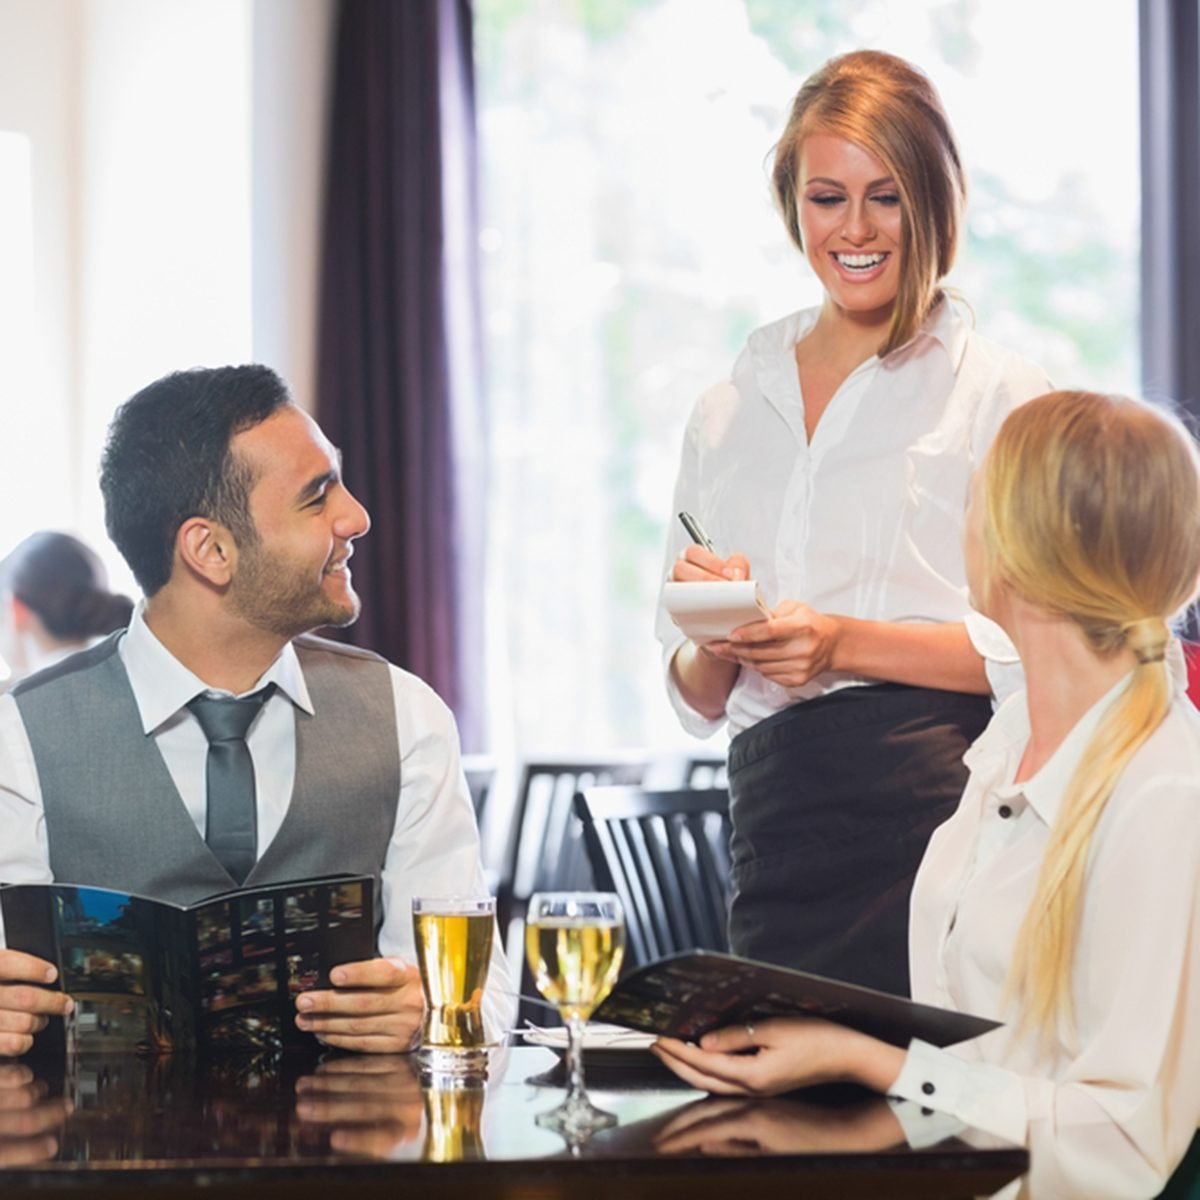 Smiling business people ordering dinner from pretty waitress